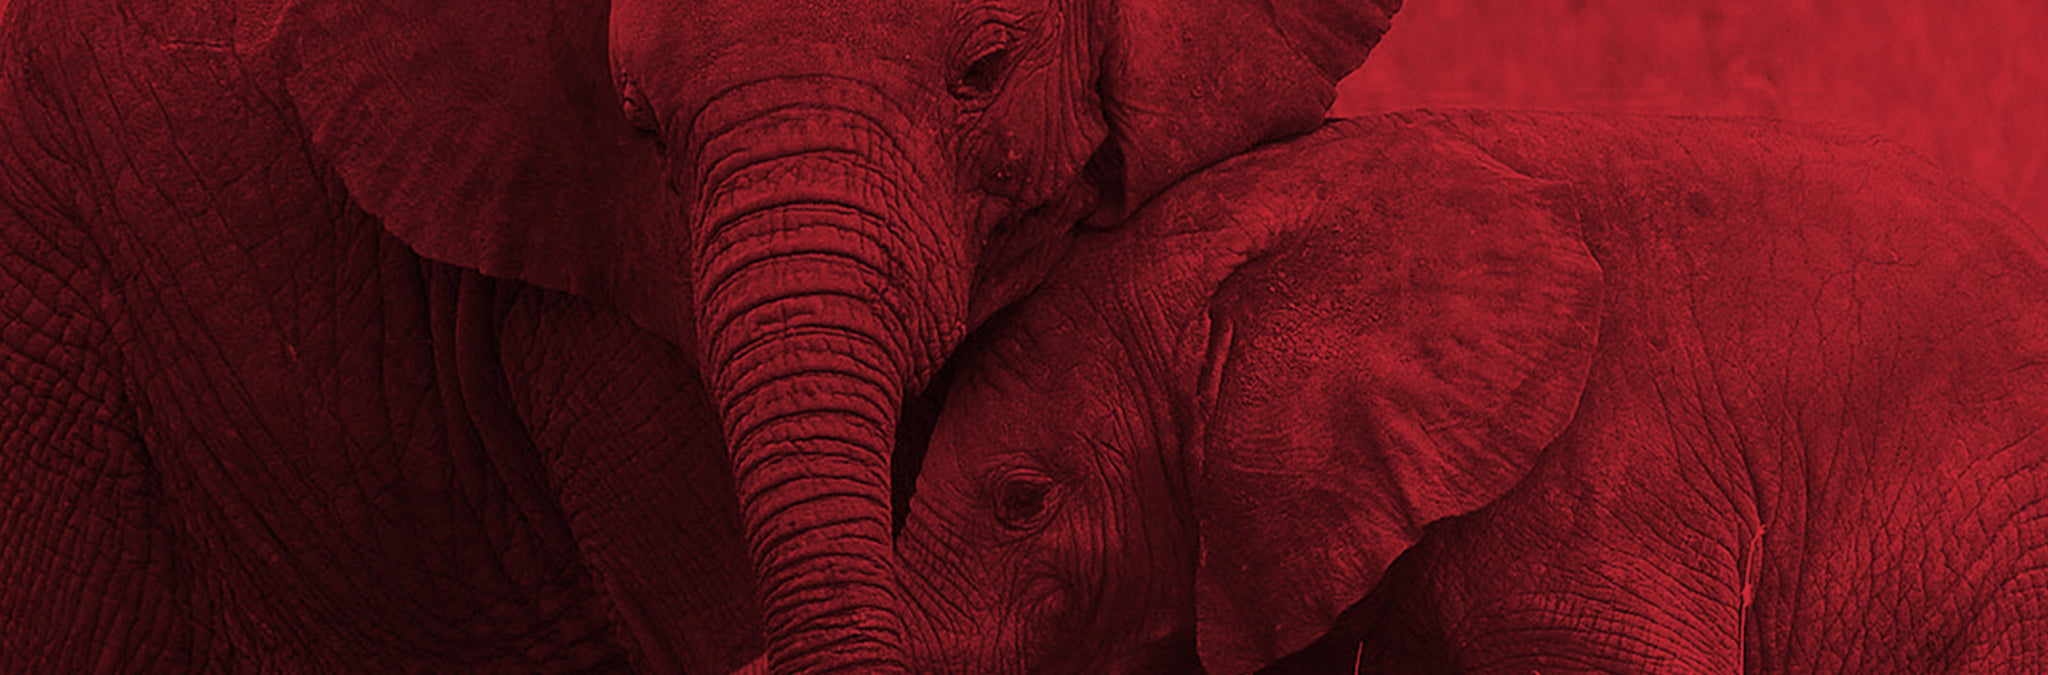 End Ivory Trade Header Image